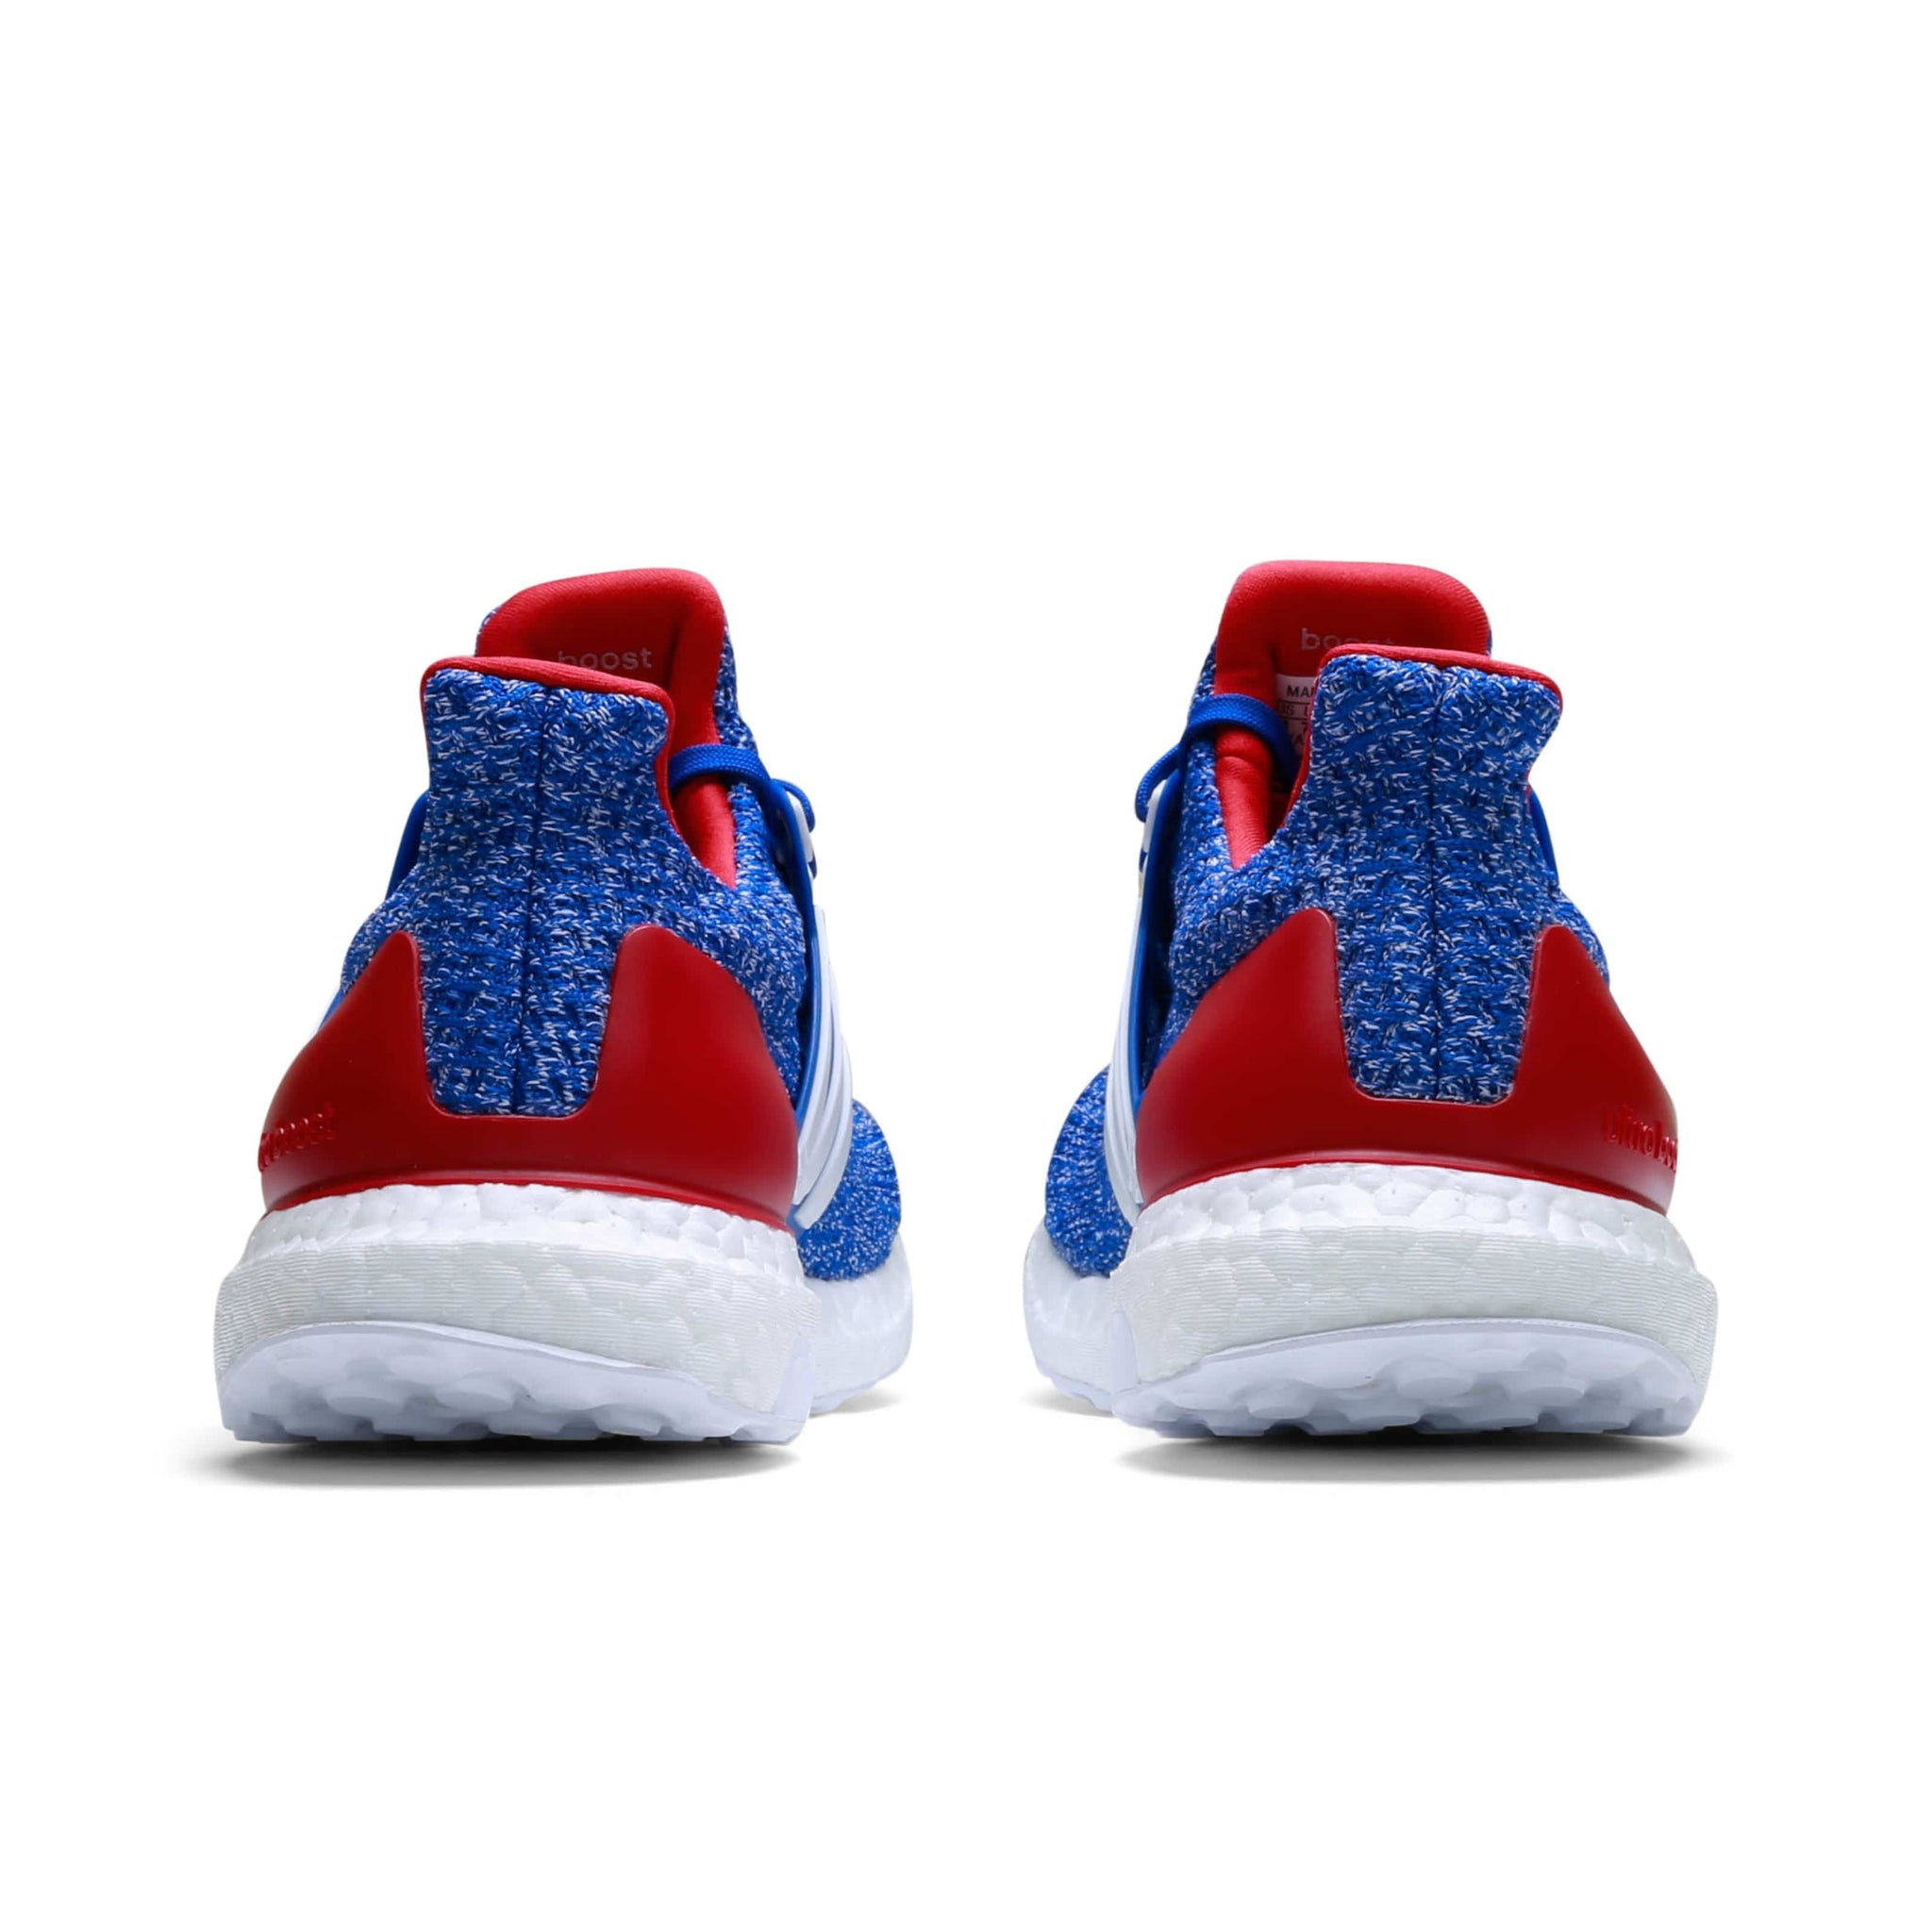 8ce26df1bdd ULTRABOOST Collegiate Royal Cloud White Power Red – Bodega